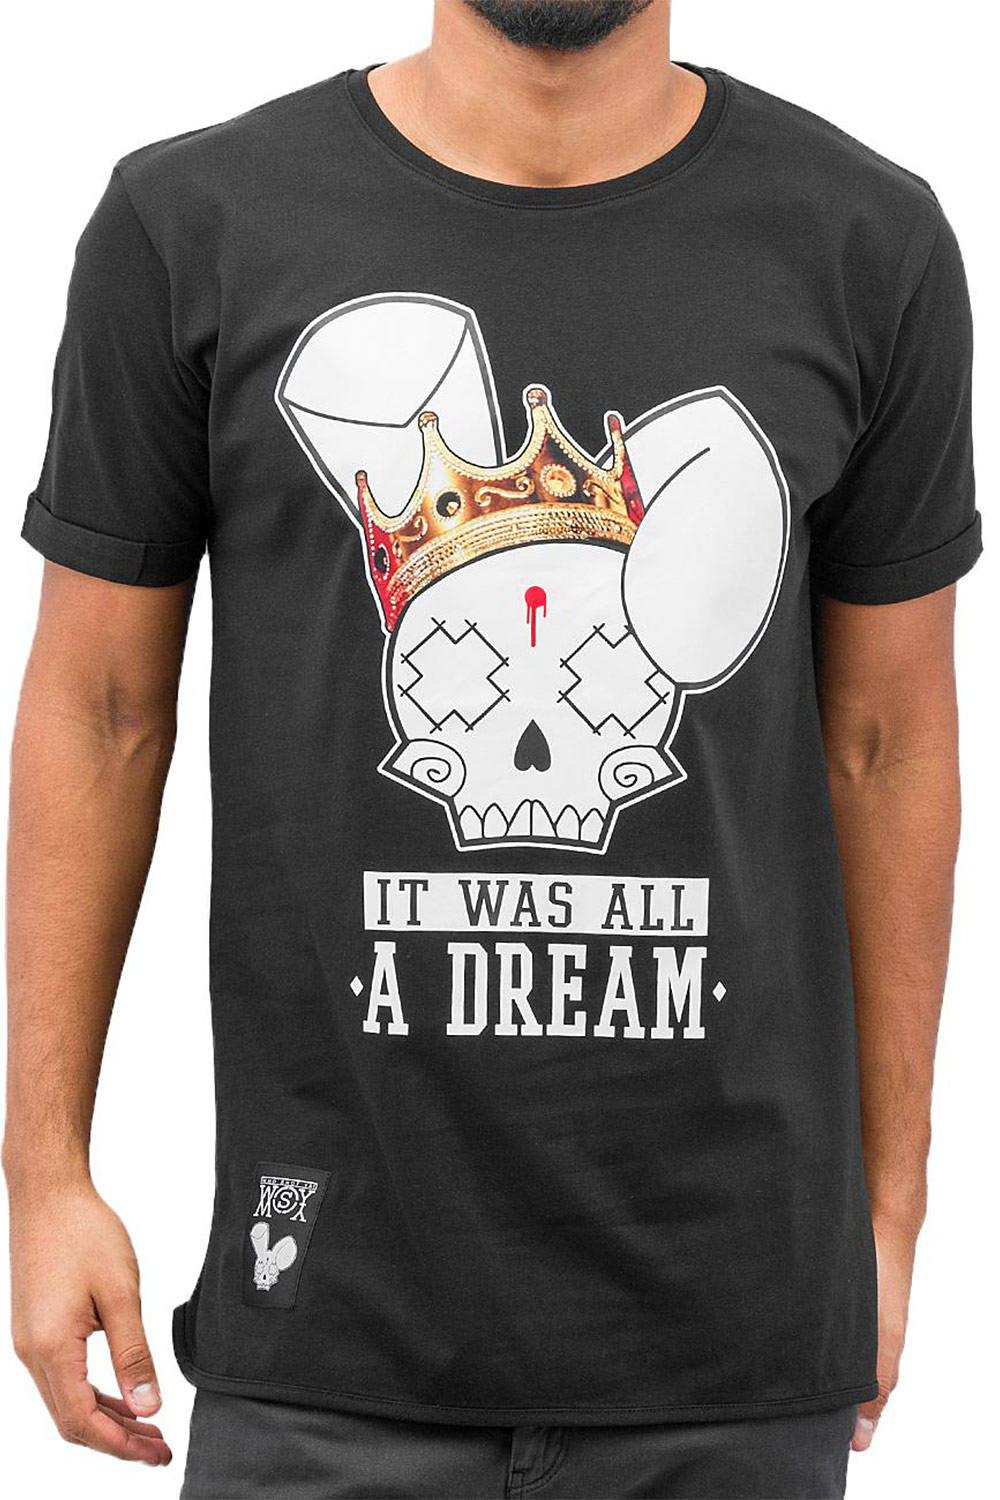 WHO SHOT YA? Dream T-Shirt Black auf oboy.de